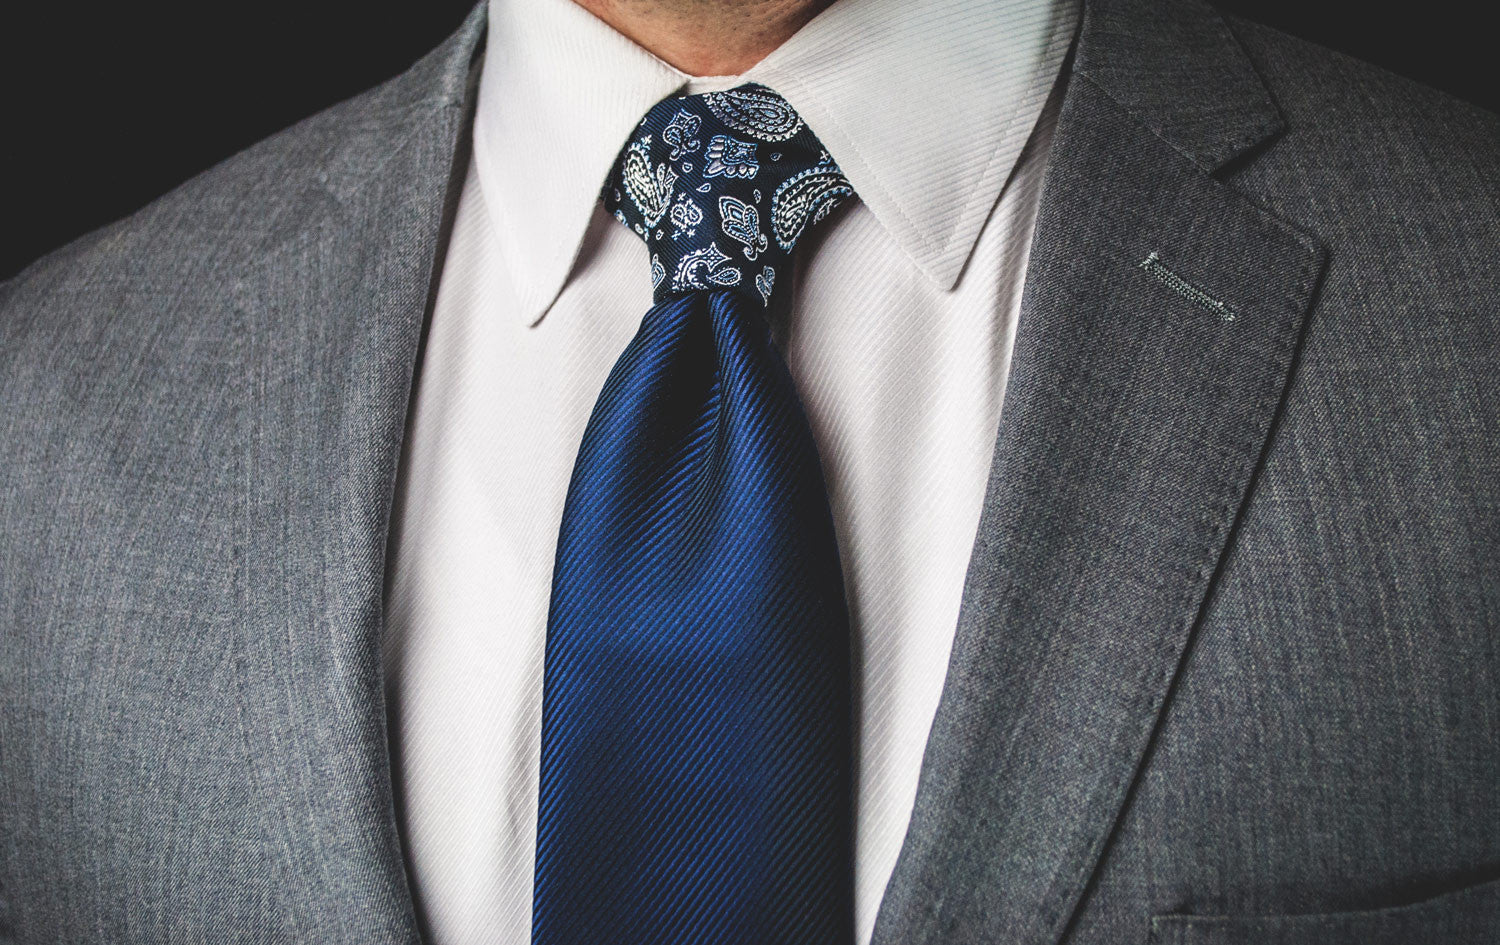 The Blue & White Paisley Proper Knot™